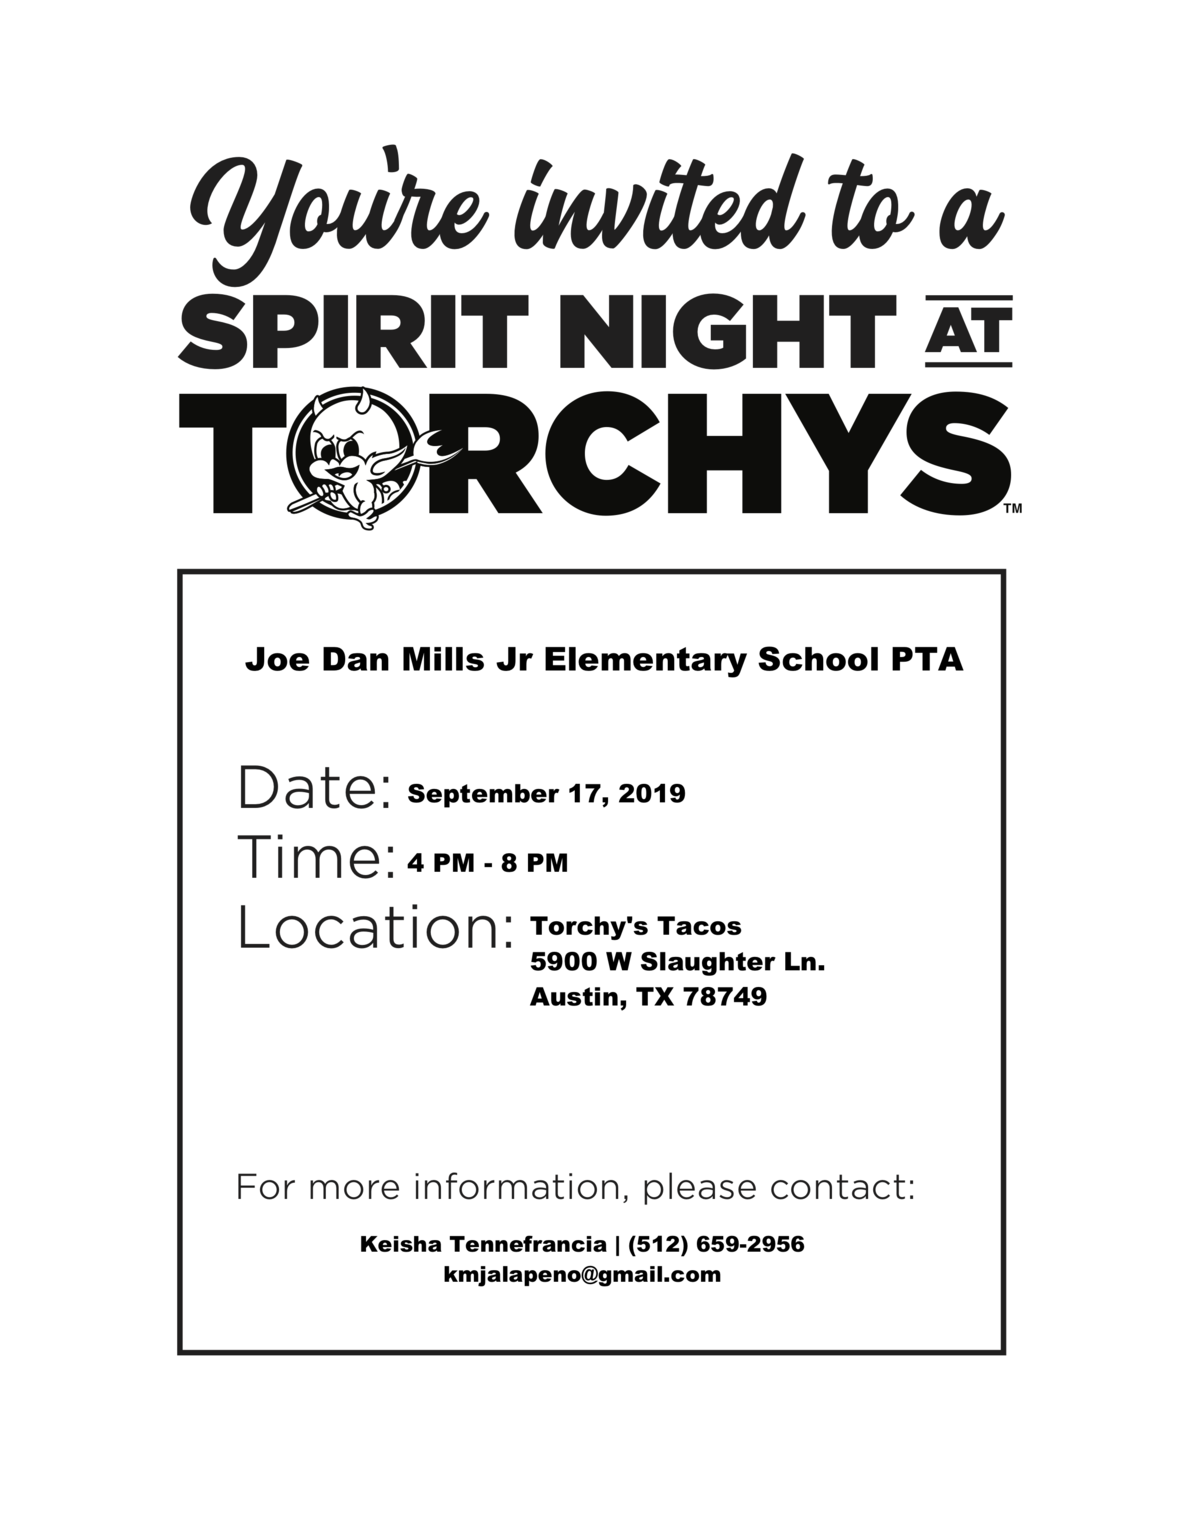 Mills Spirit Night Flyer 9.17.19